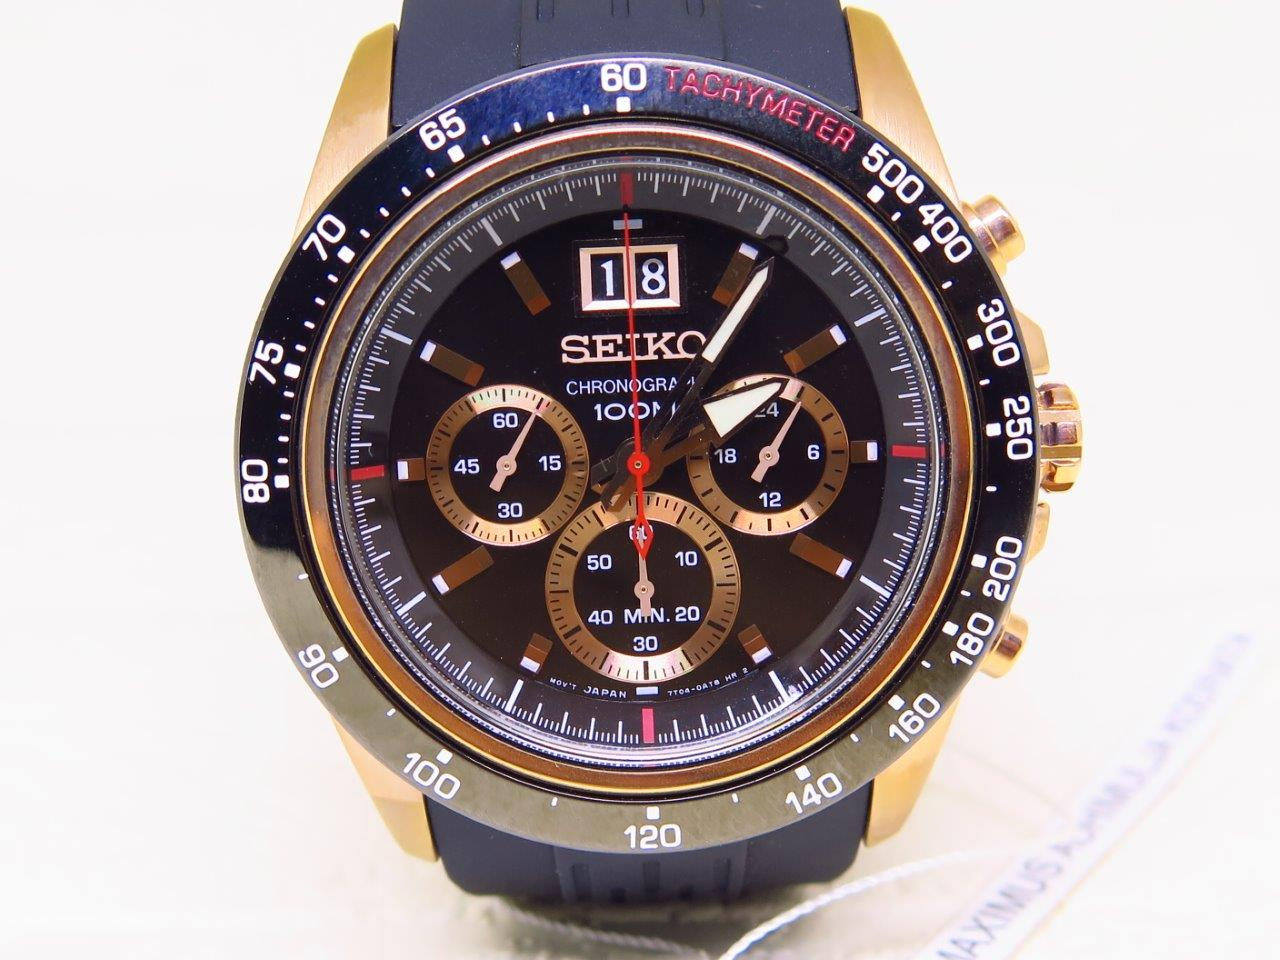 SEIKO LORD CHRONOGRAPH BIG DATE ROSE GOLD CASE - SEIKO SPC250P1